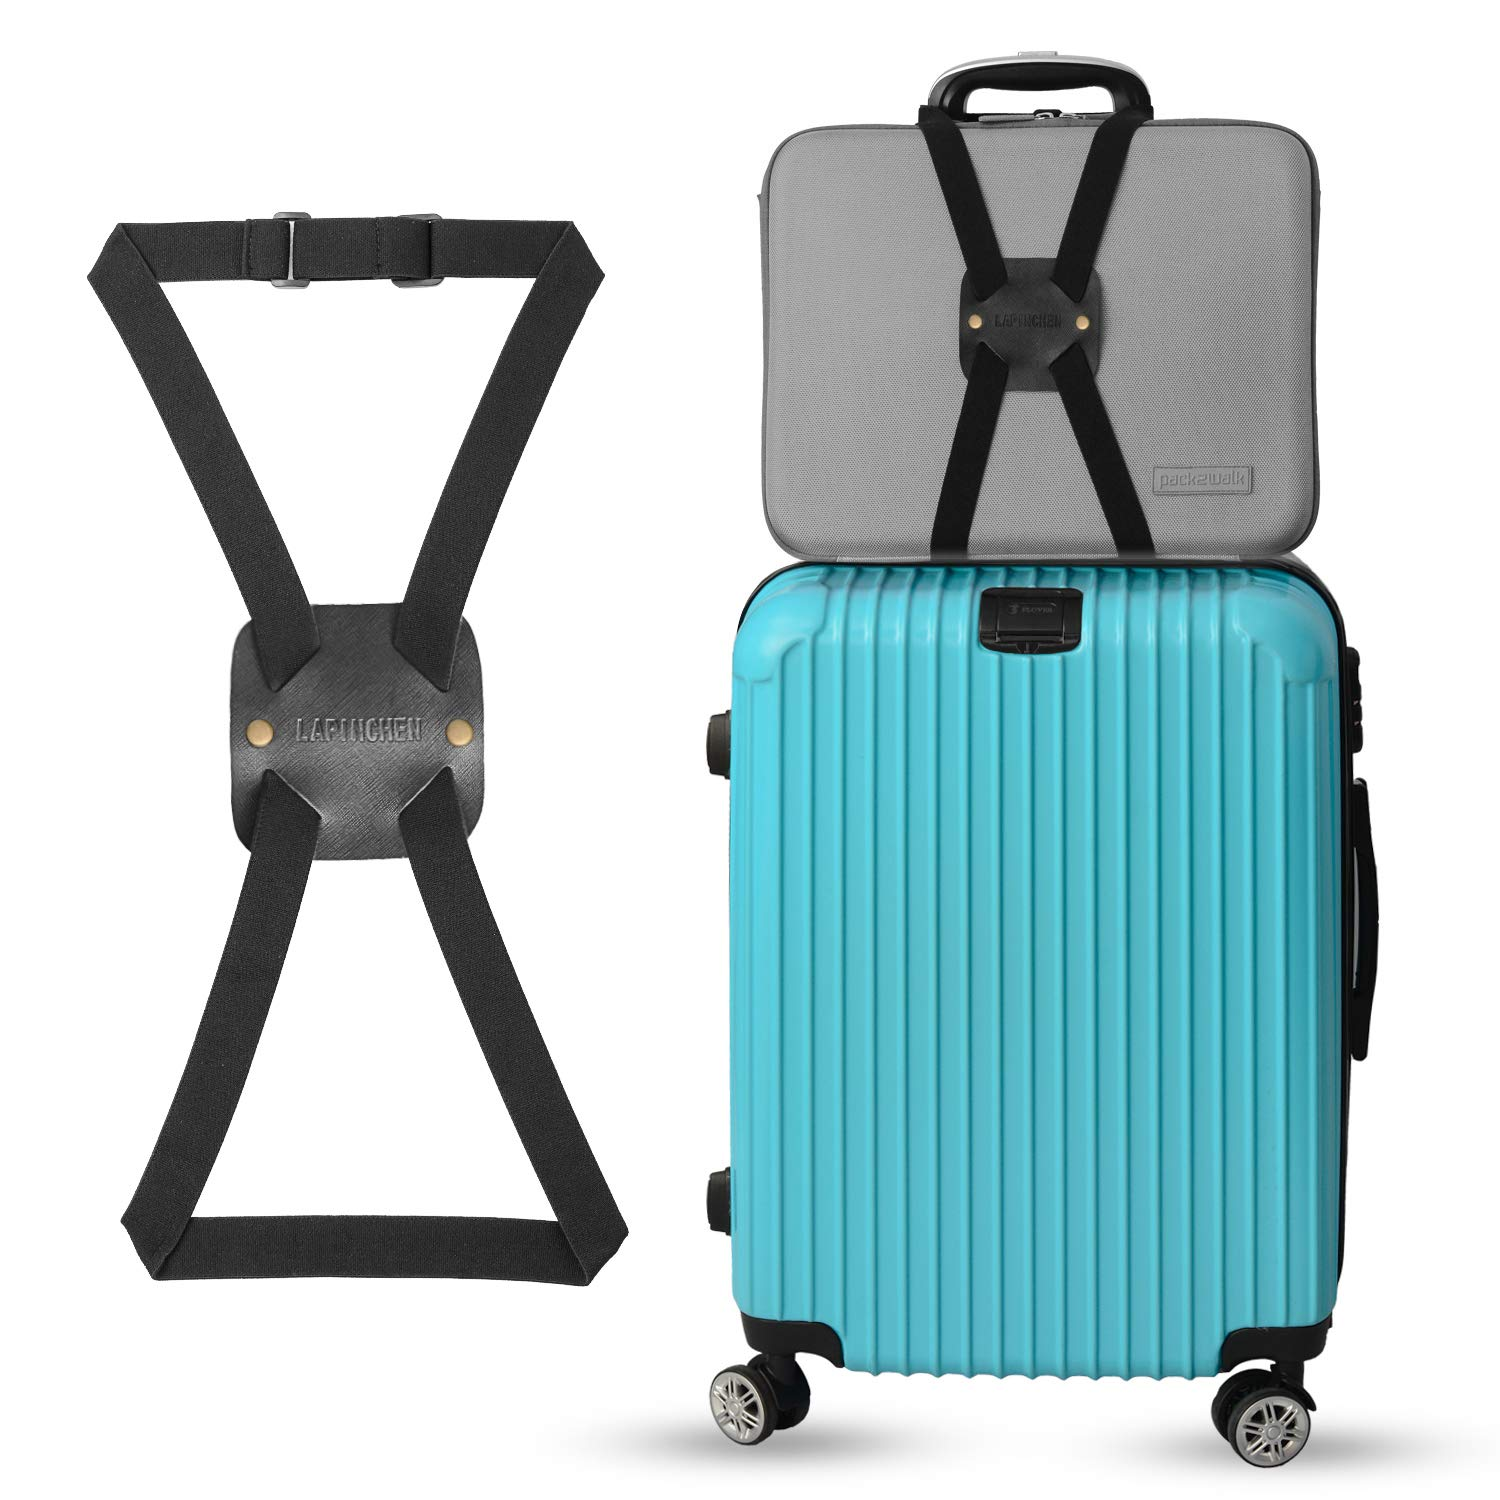 Senzeal Adjustable Travel Luggage Straps Suitcase Strap Belts Travel Bag Accessories 3 Pieces